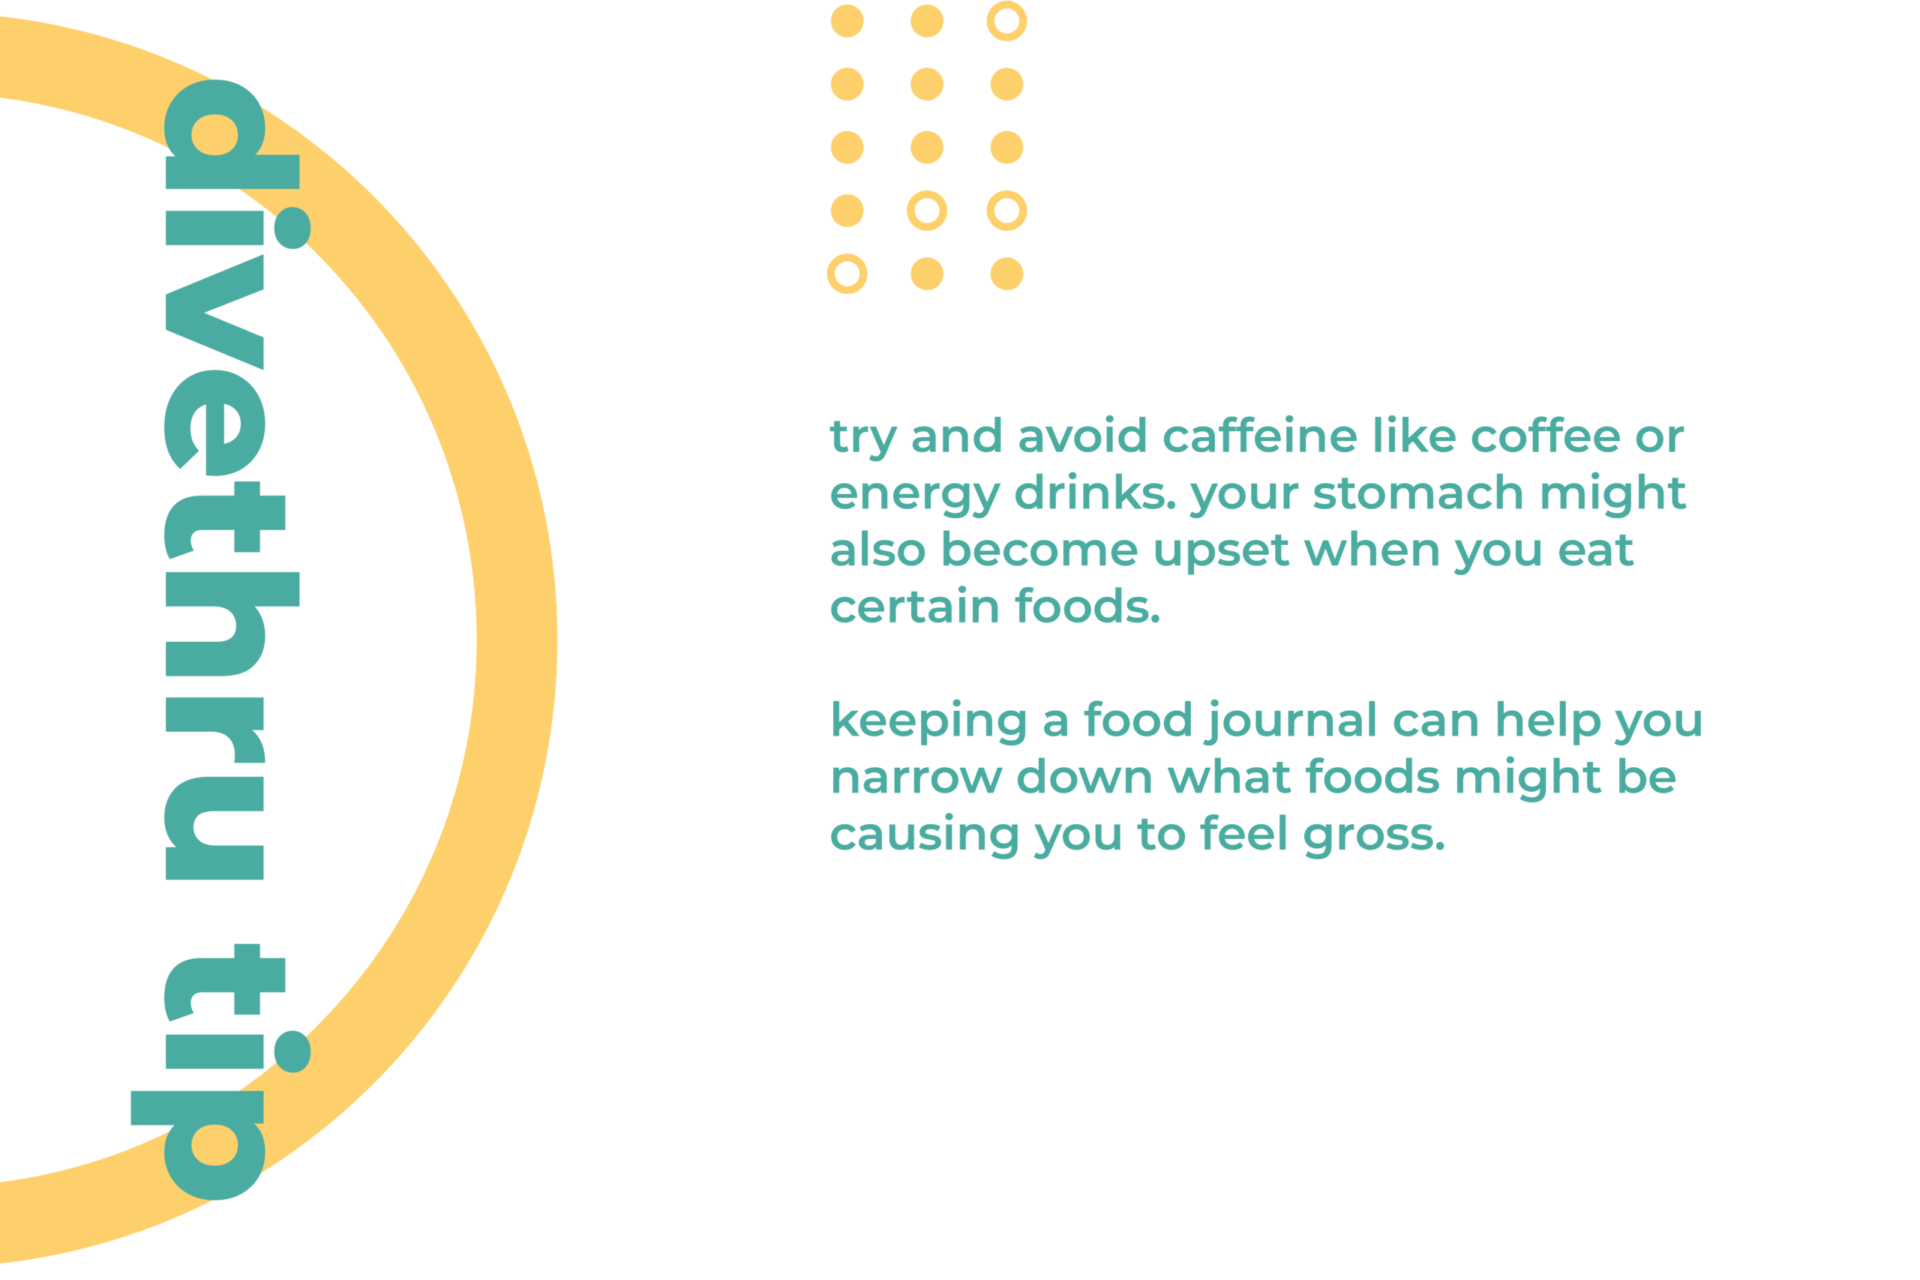 This image gives you a tip on how to deal with a physical sign of anxiety. Try and avoid caffeine like coffee or energy drinks. Your stomach might also become upset when you eat certain foods. Keeping a food journal can help you narrow down what foods might be causing you to feel gross.